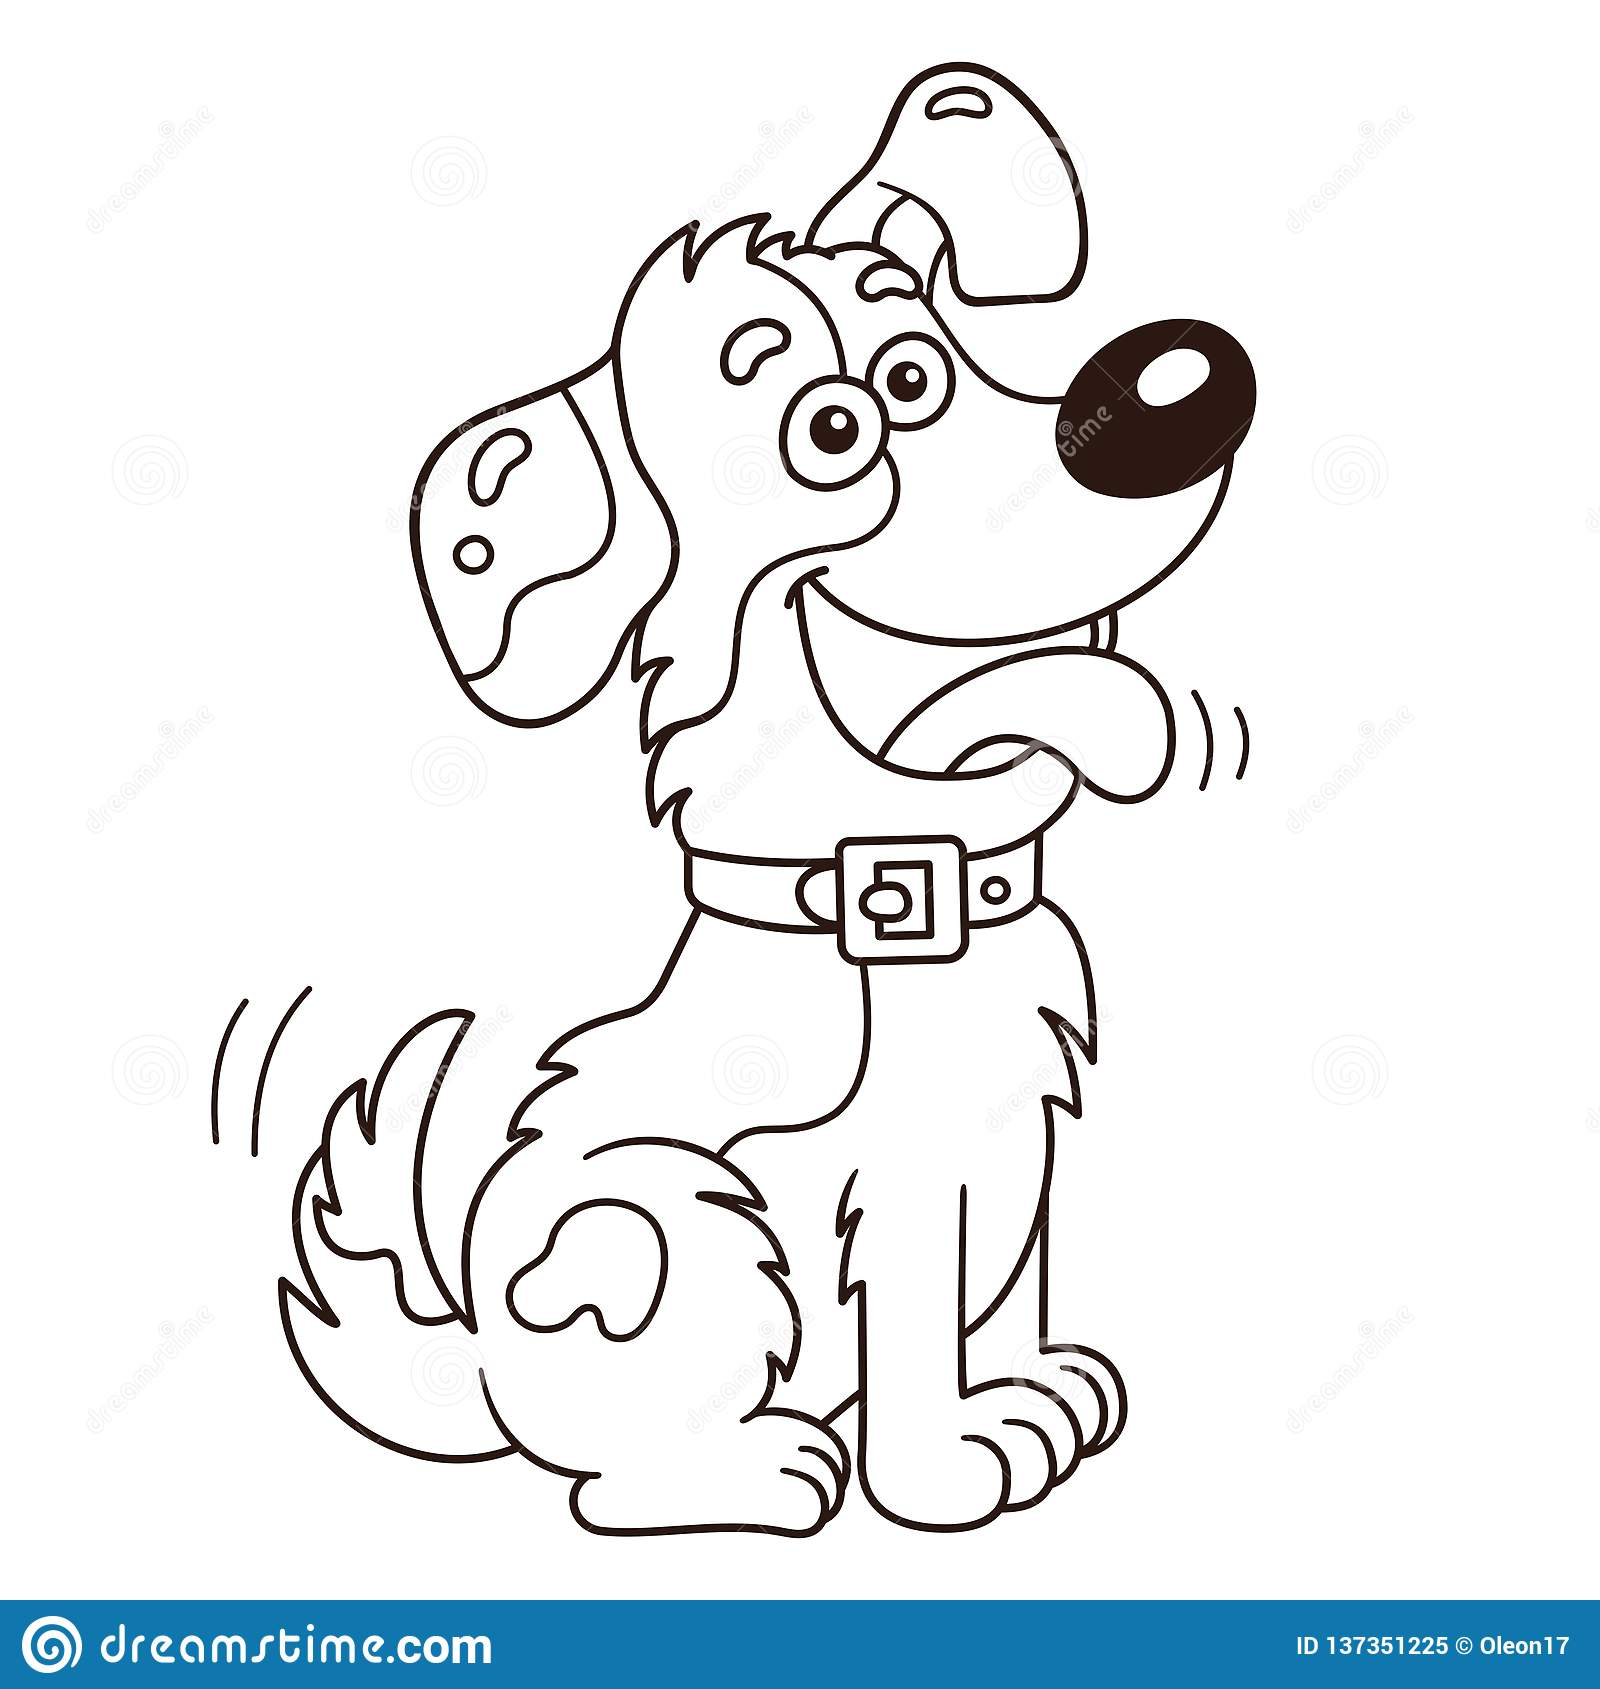 Coloring page outline of cartoon dog coloring book for kids